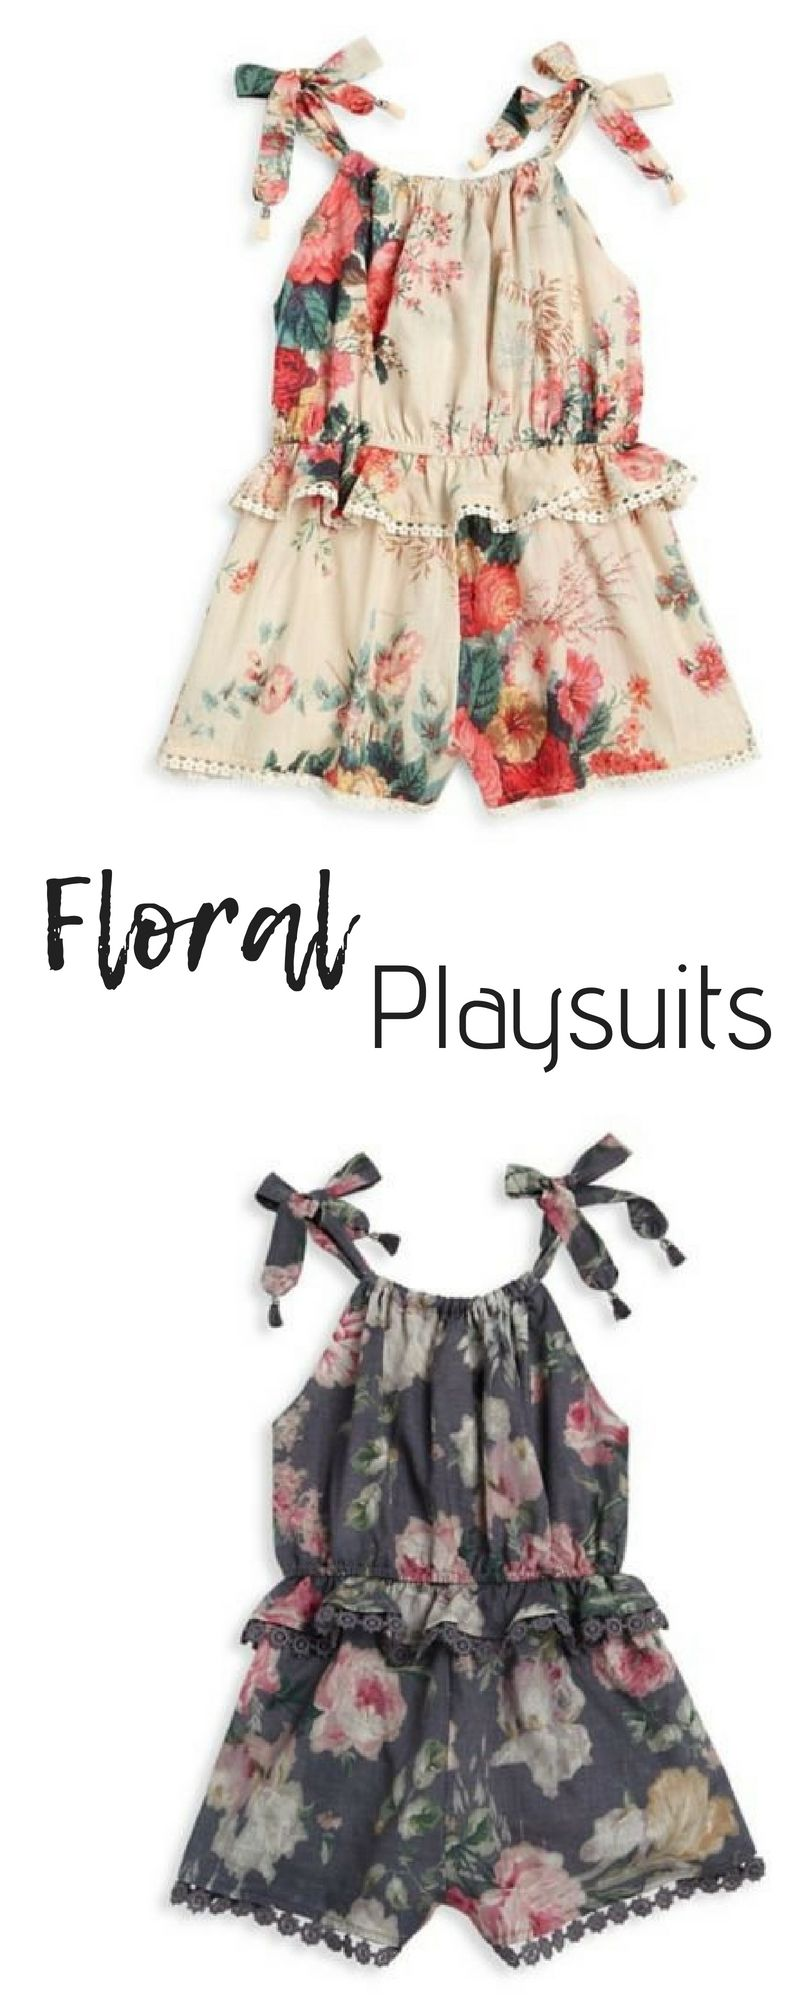 b11cb055bed5 Charming floral print playsuit with ruffle peplum and lace trim ...